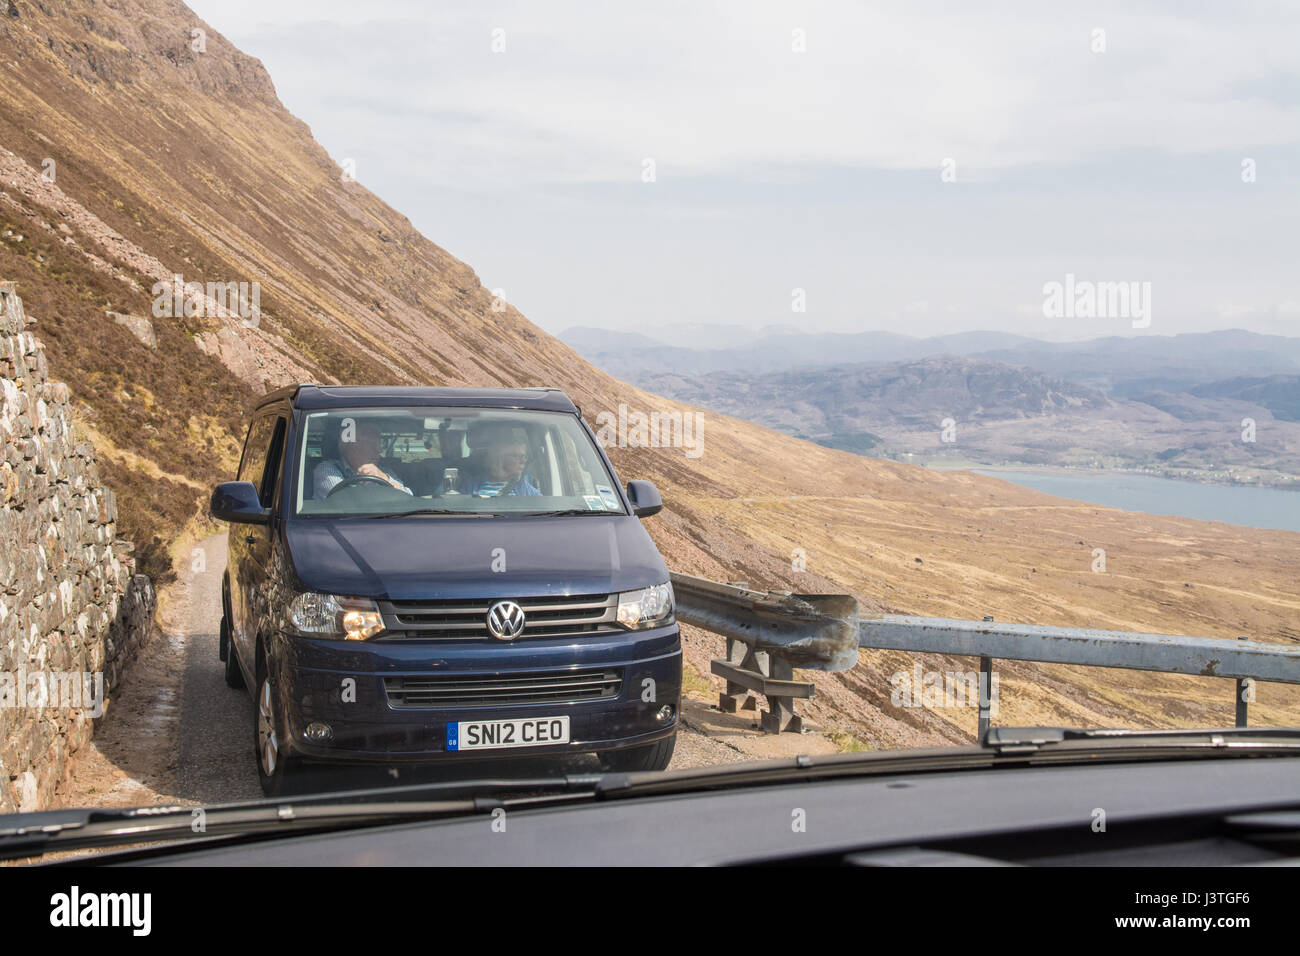 Bealach na Ba - camper van using passing place - viewed through windscreen of oncoming vehicle, Scottish Highlands, - Stock Image